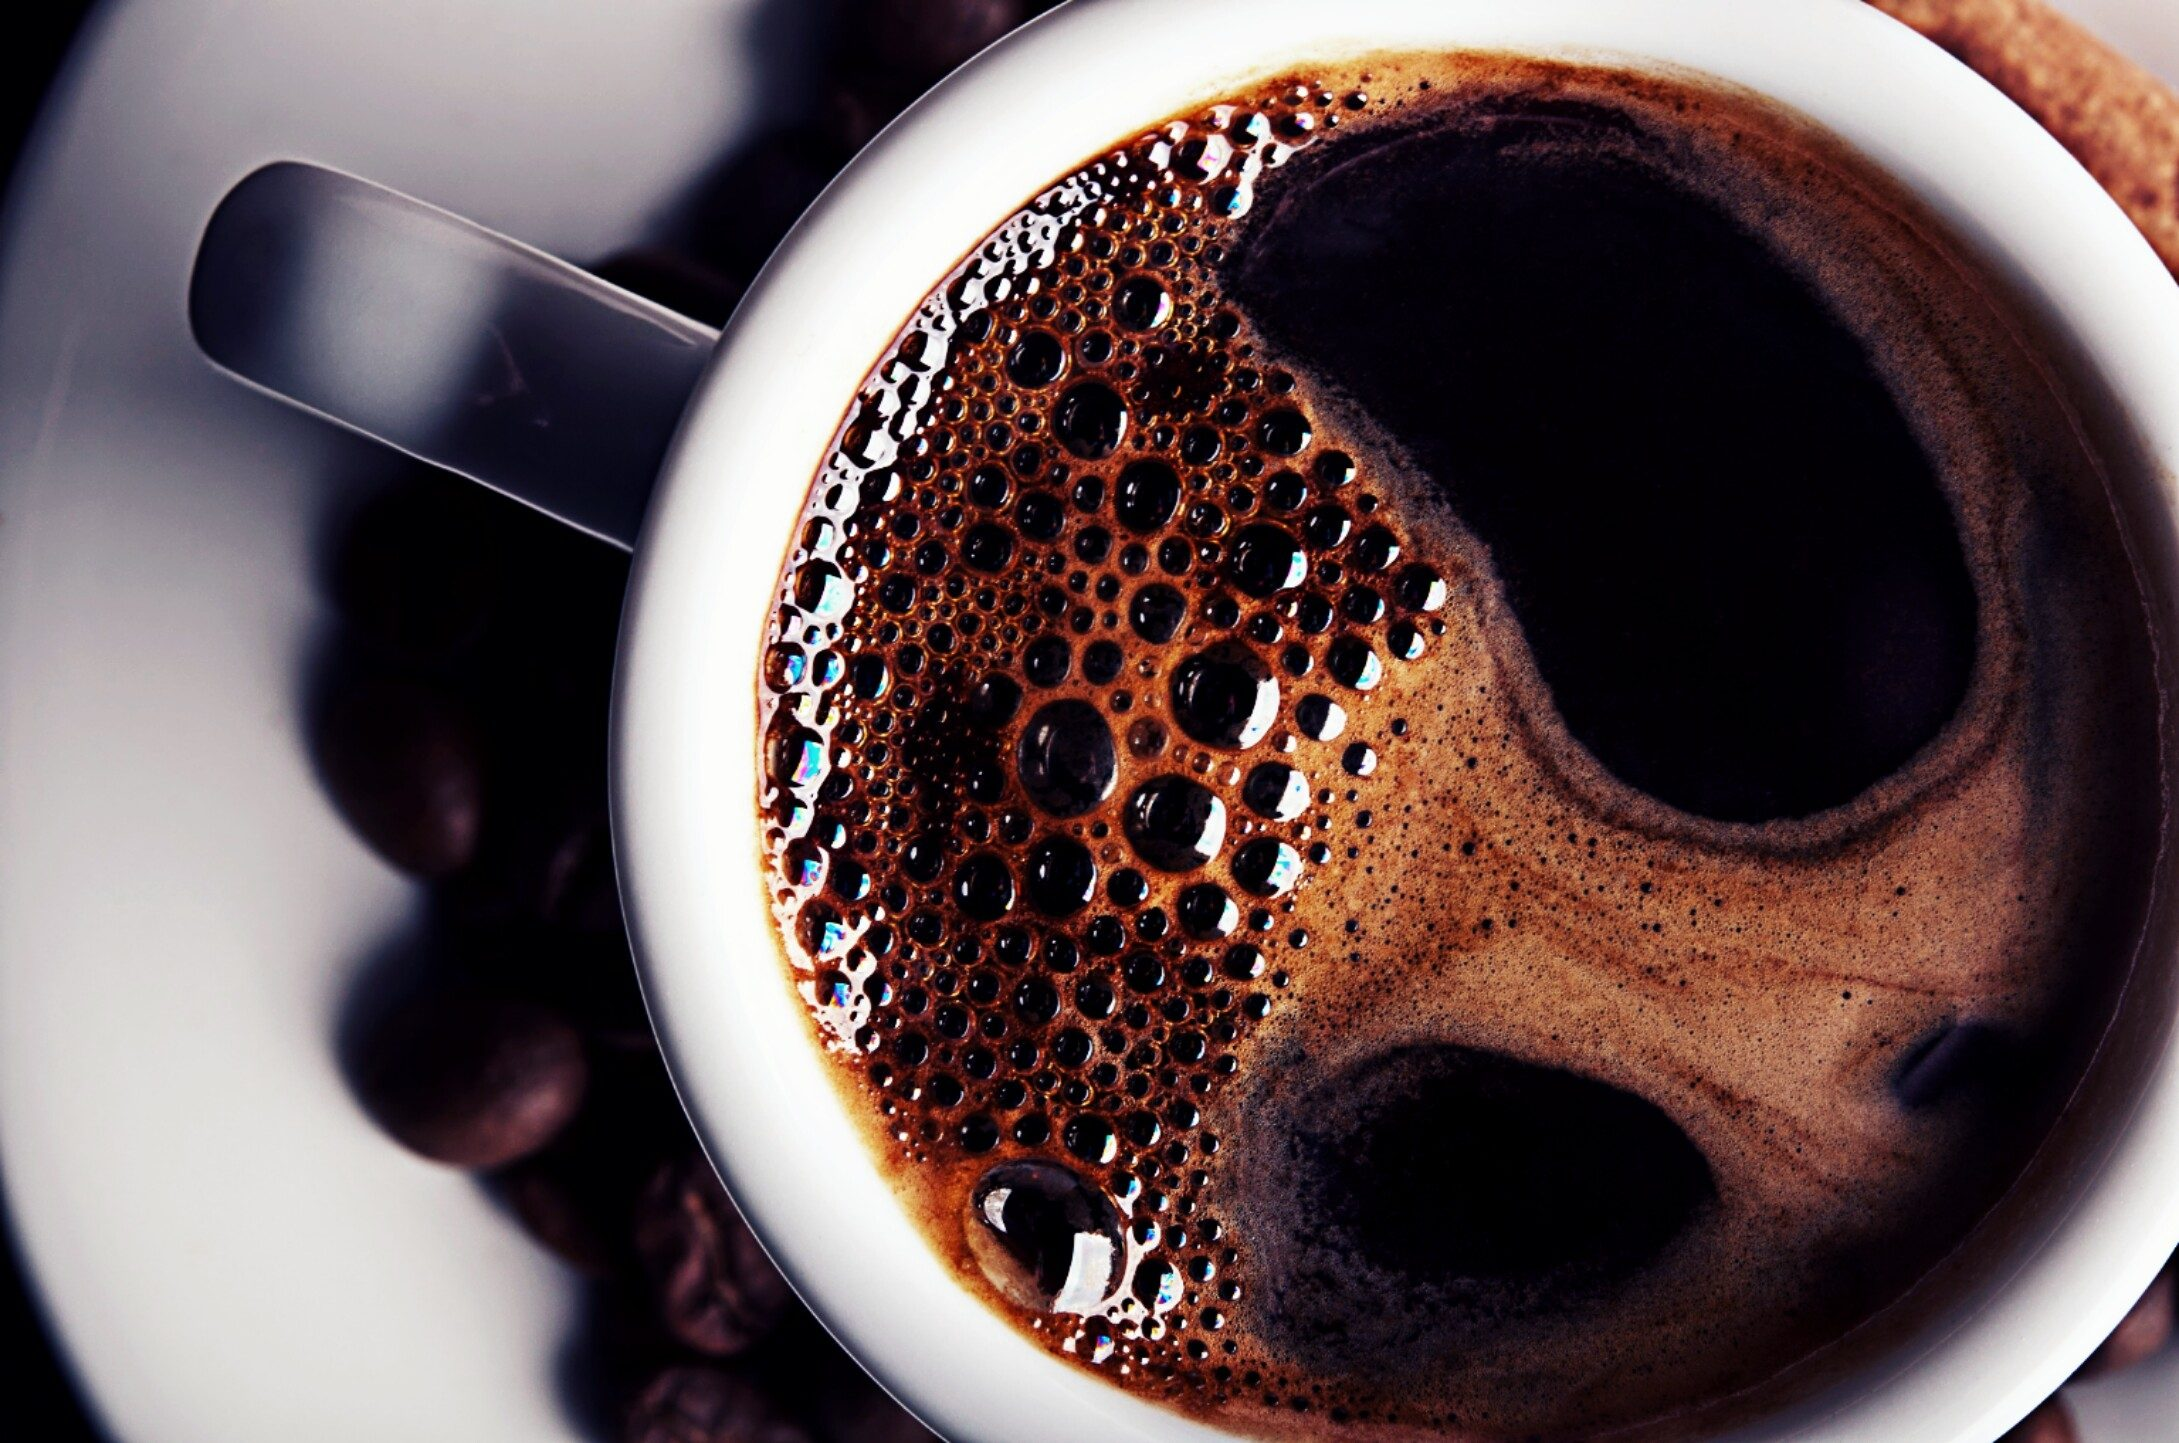 Collagen In Your Coffee? A Scientist Says Forget It - Texas A&M Today